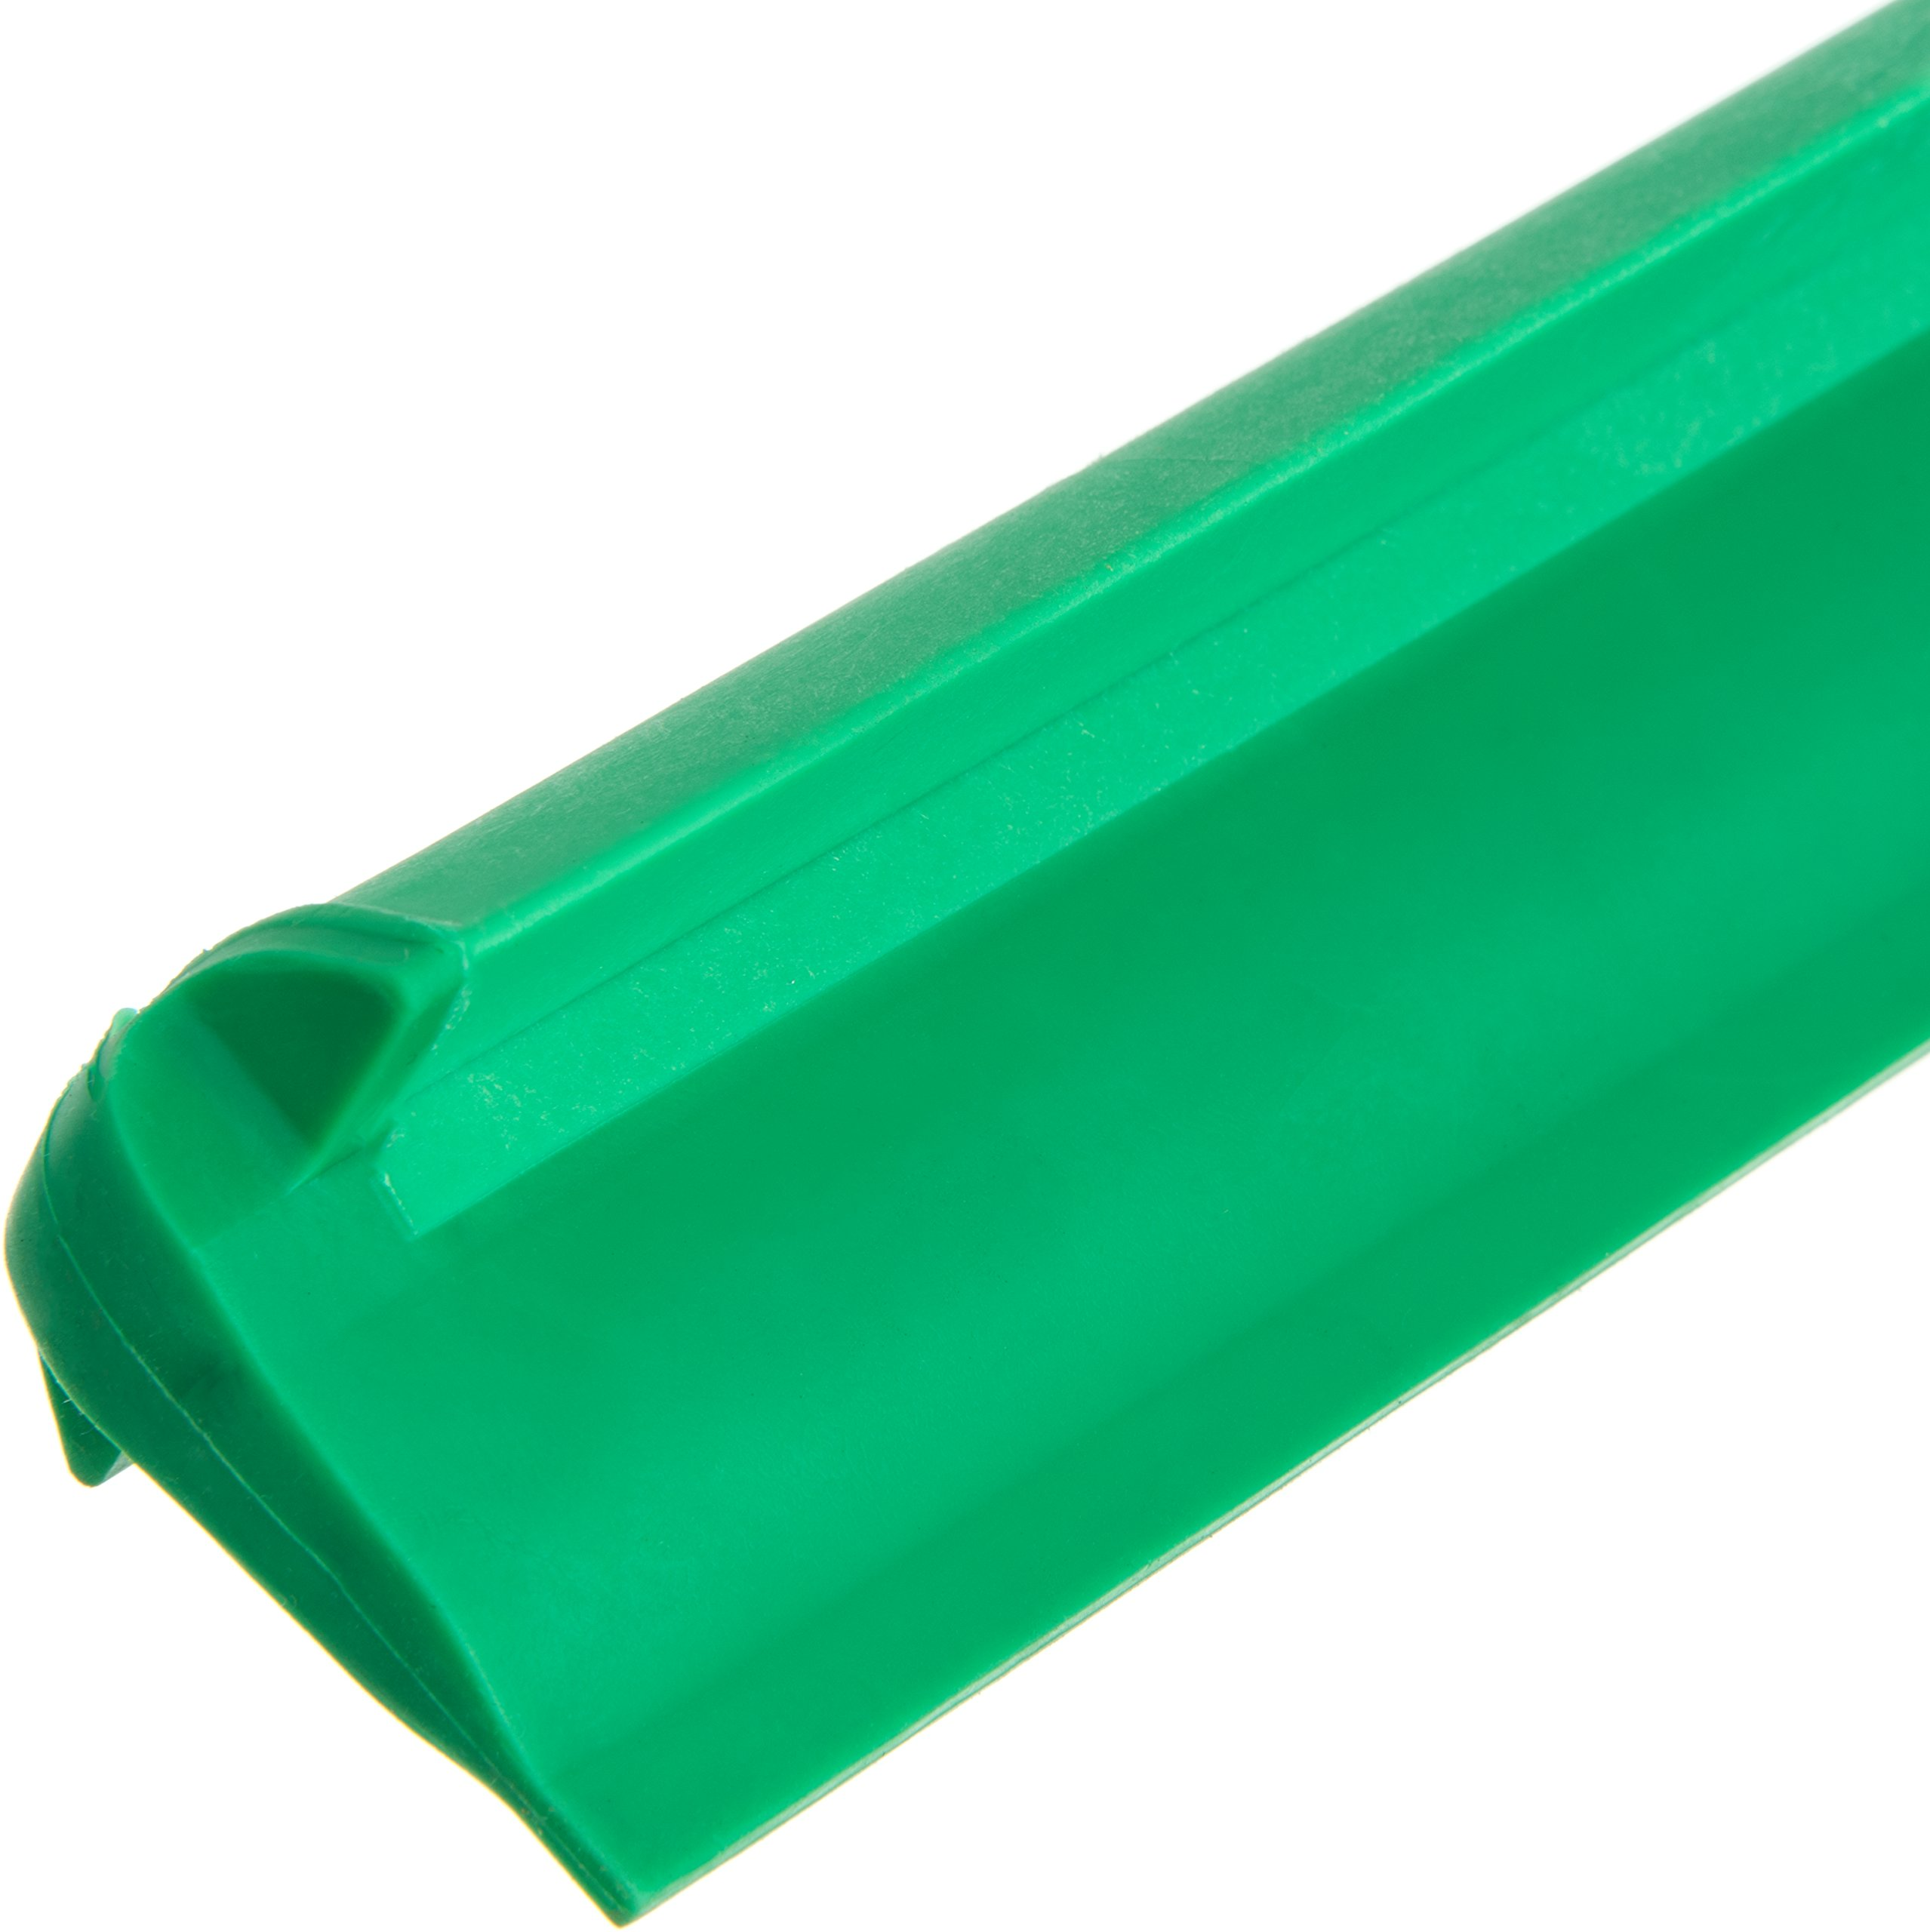 Carlisle 3656809 Solid One-Piece Foam Rubber Head Floor Squeegee, 24'' Length, Green by Carlisle (Image #9)